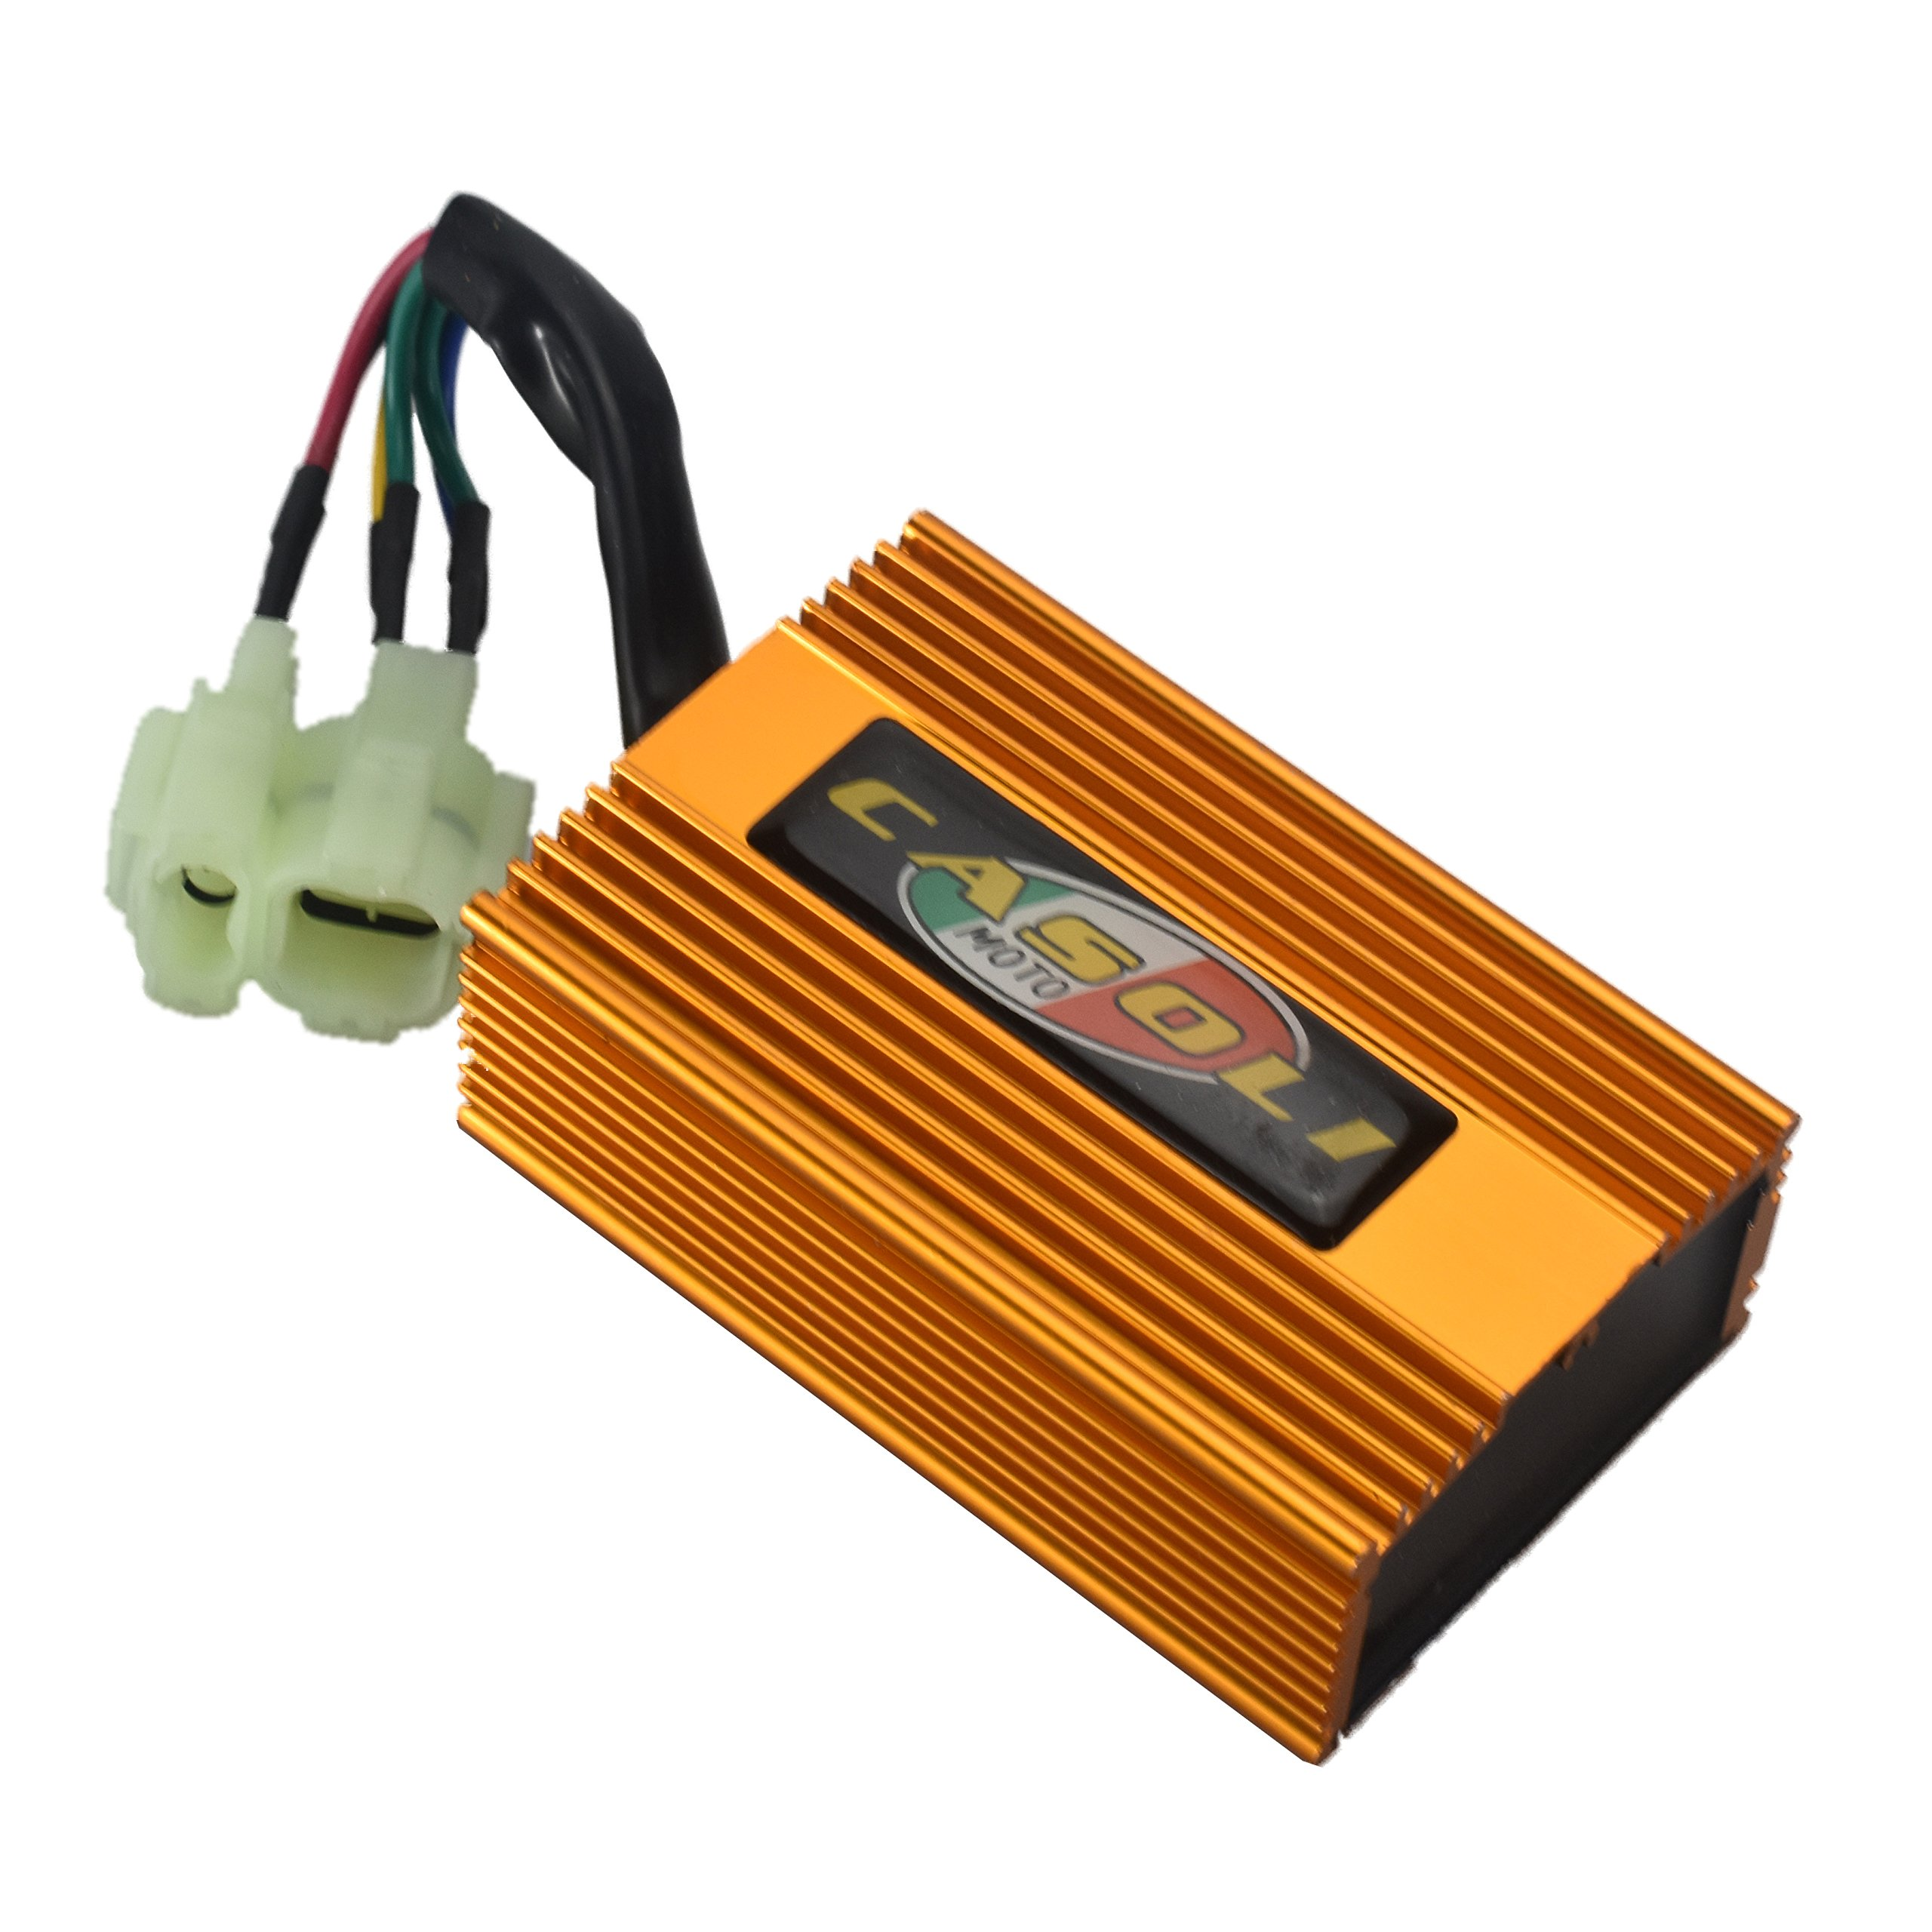 MaySpare High Performance GY6 DC CDI Box For 4-Stork Engine 125cc 150cc 250cc Chinese Scooter ATV 6 PINS